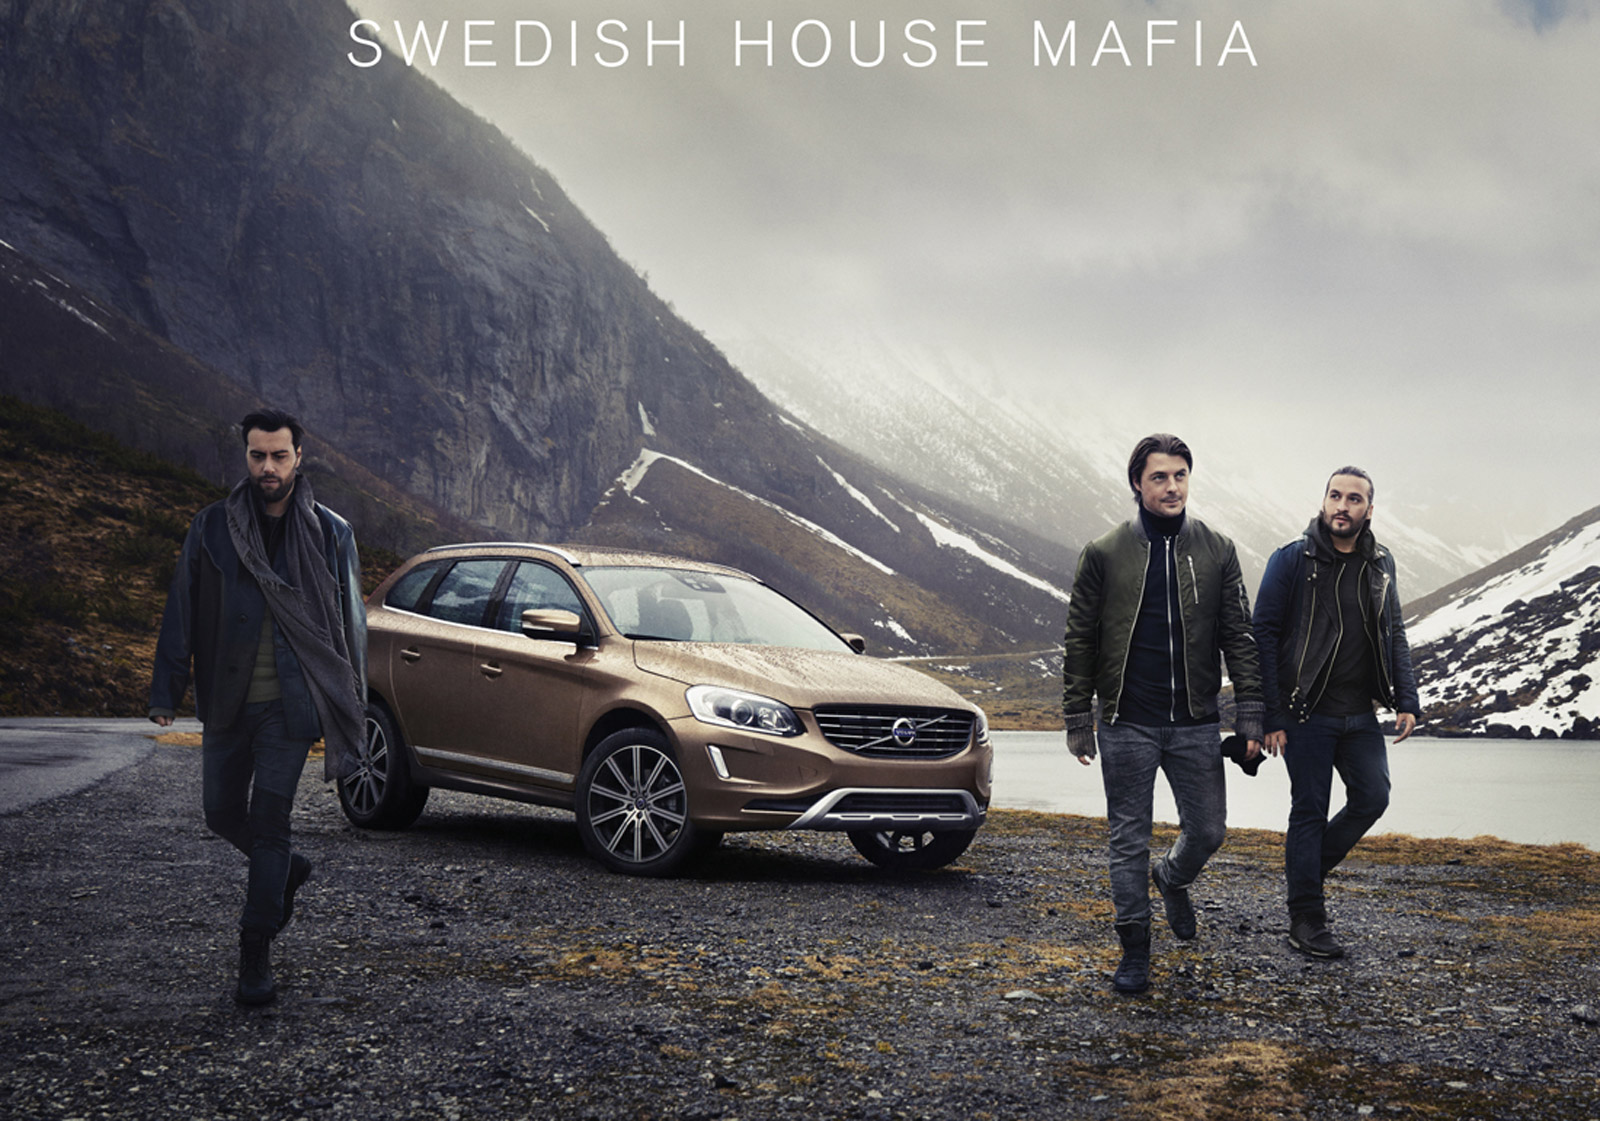 Volvo Xc90 Commercial >> swedish-house-mafia-star-in-volvos-ad-campaign-for-the-2014-xc60_100427796_h.jpg